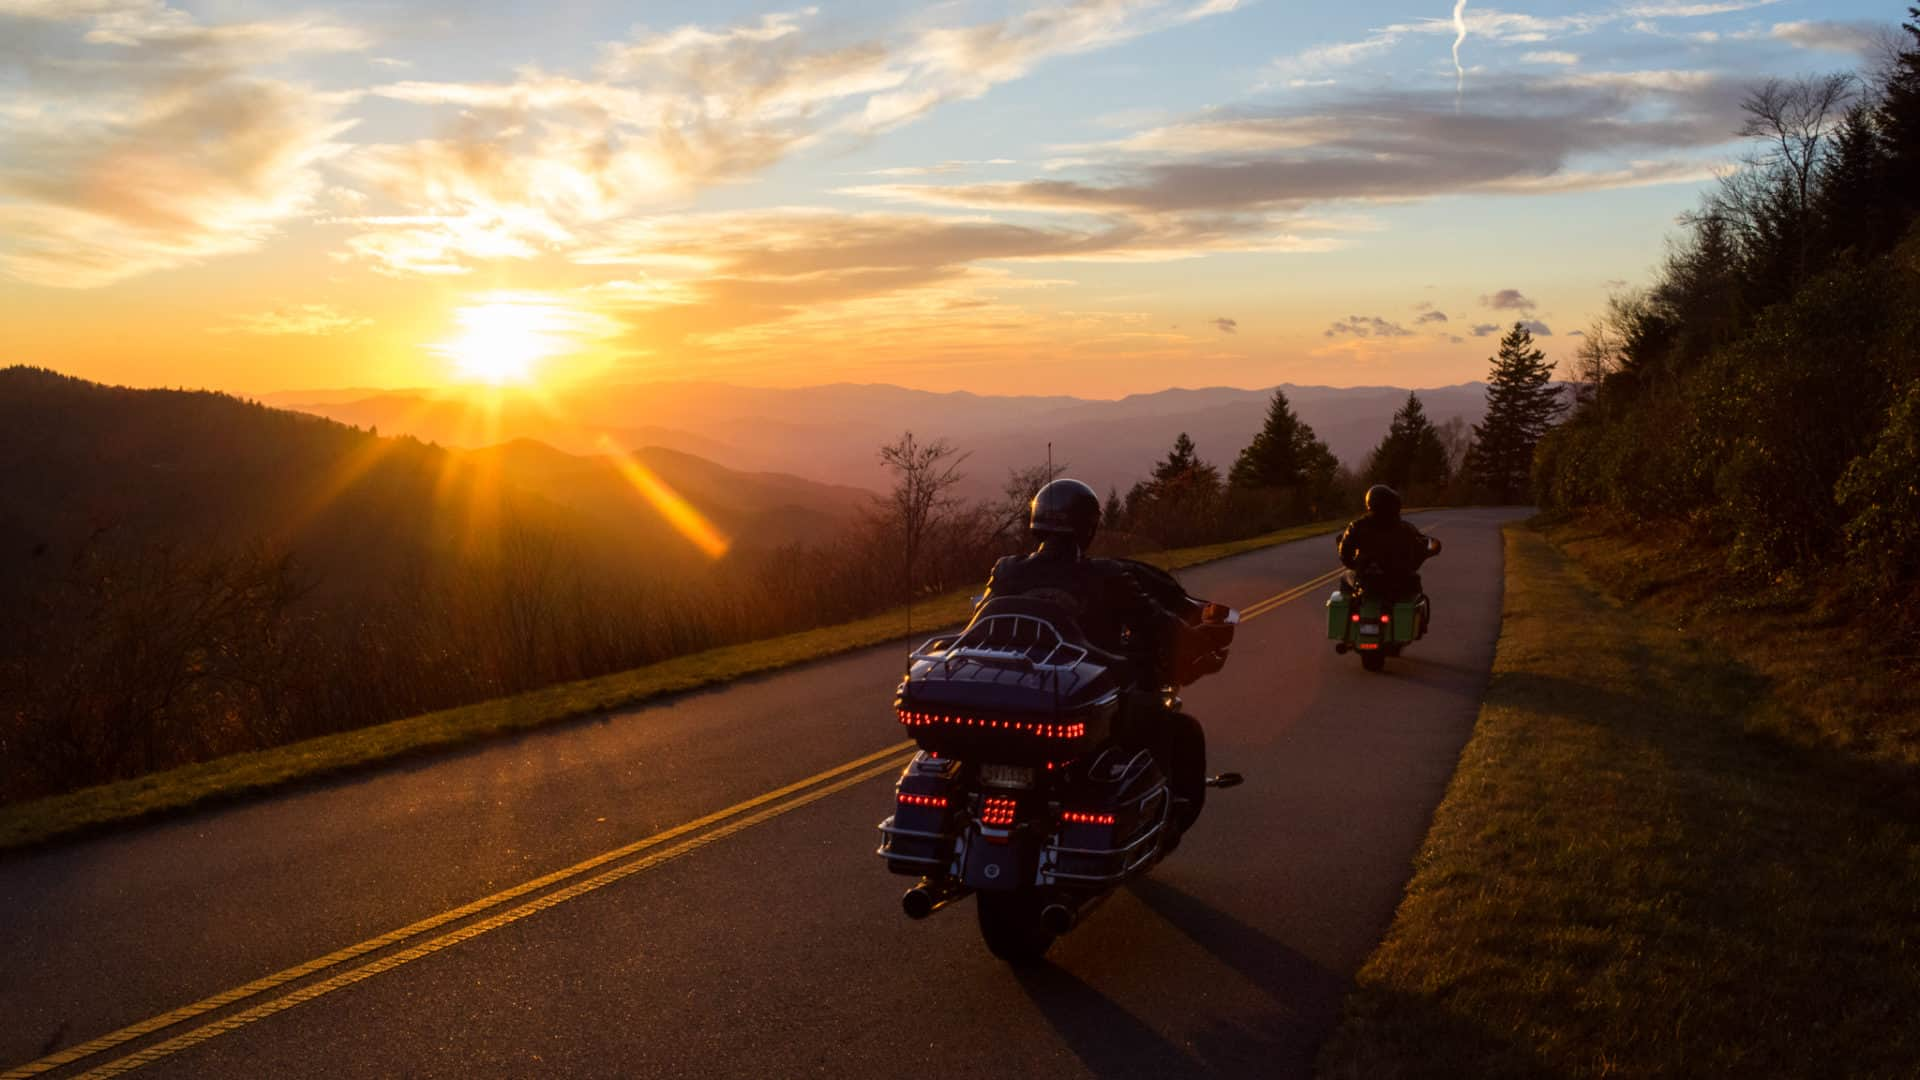 Motorcycle Ride on the Blue Ridge Parkway